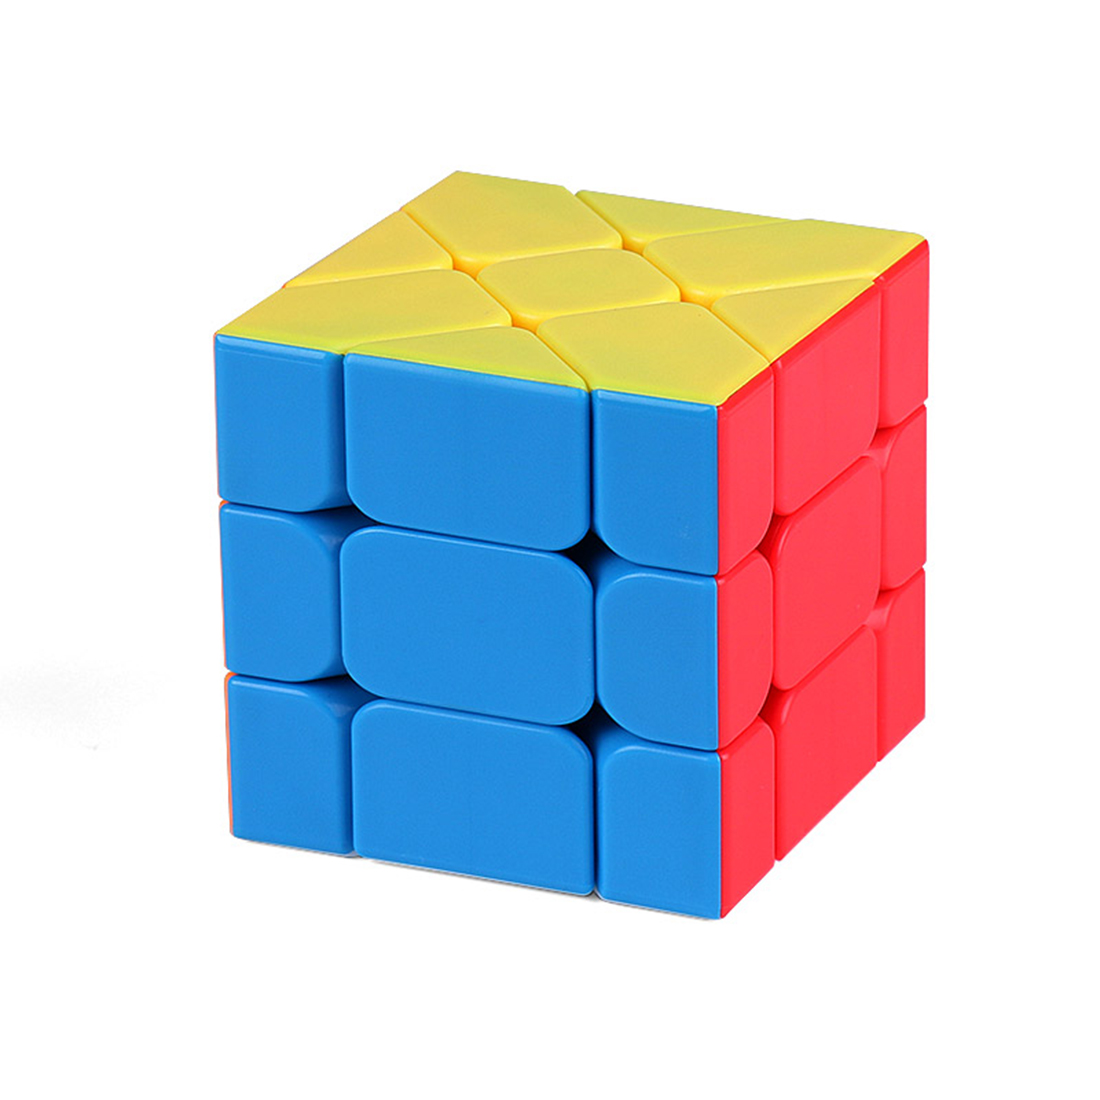 MF8848 Mofang Jiaoshi Moving Edge Type 3x3x3 Magic Cube Educational Toys For Brain Trainning - Colorful